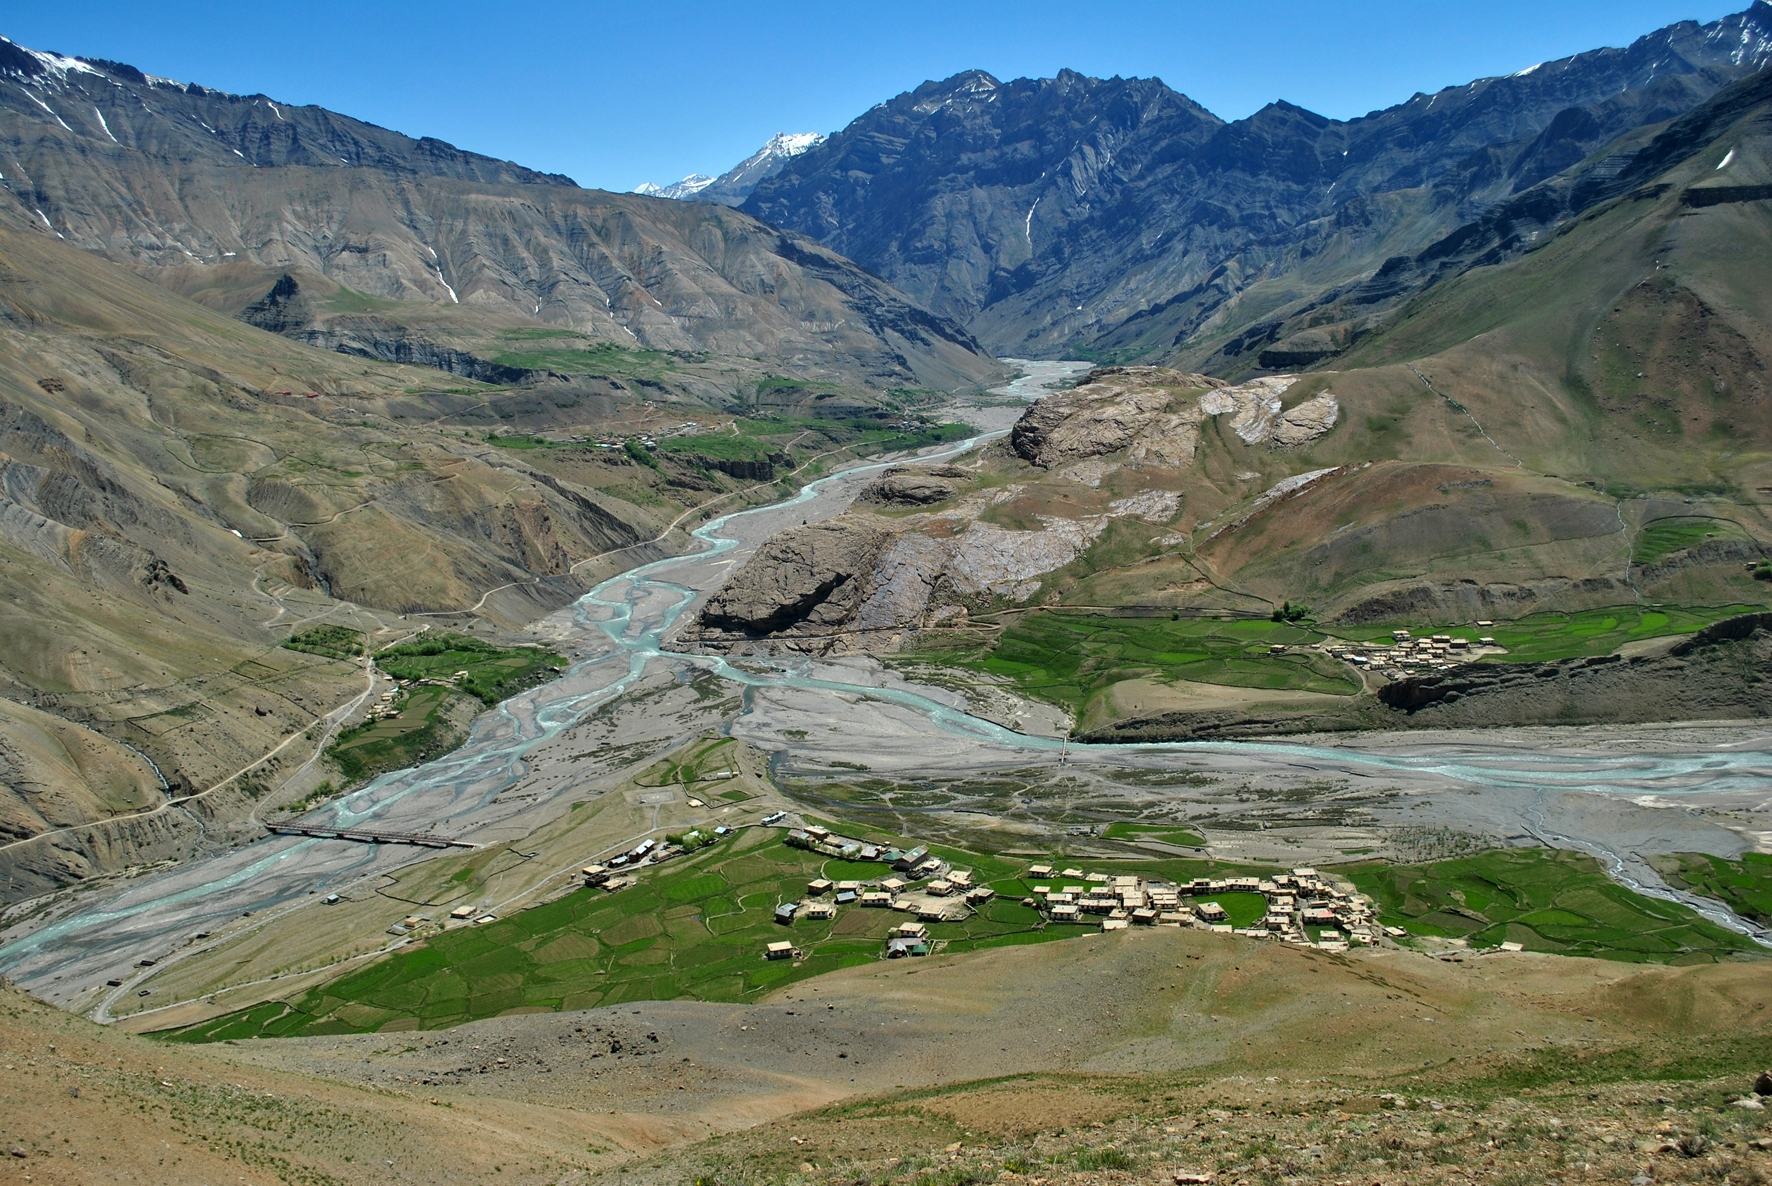 Sagnam village is situated at the confluence of the Pin and Parahio rivers in the Pin Valley of Himachal Pradesh. Photo: Abhishek Ghoshal  Weighing an average of around 90 kilos, the Himalayan ibex roams the western Himalayas in Pakistan and India, usually at elevations of 3,200 m or higher. Cover Photo: 123shob123 - CC BY-SA 4.0